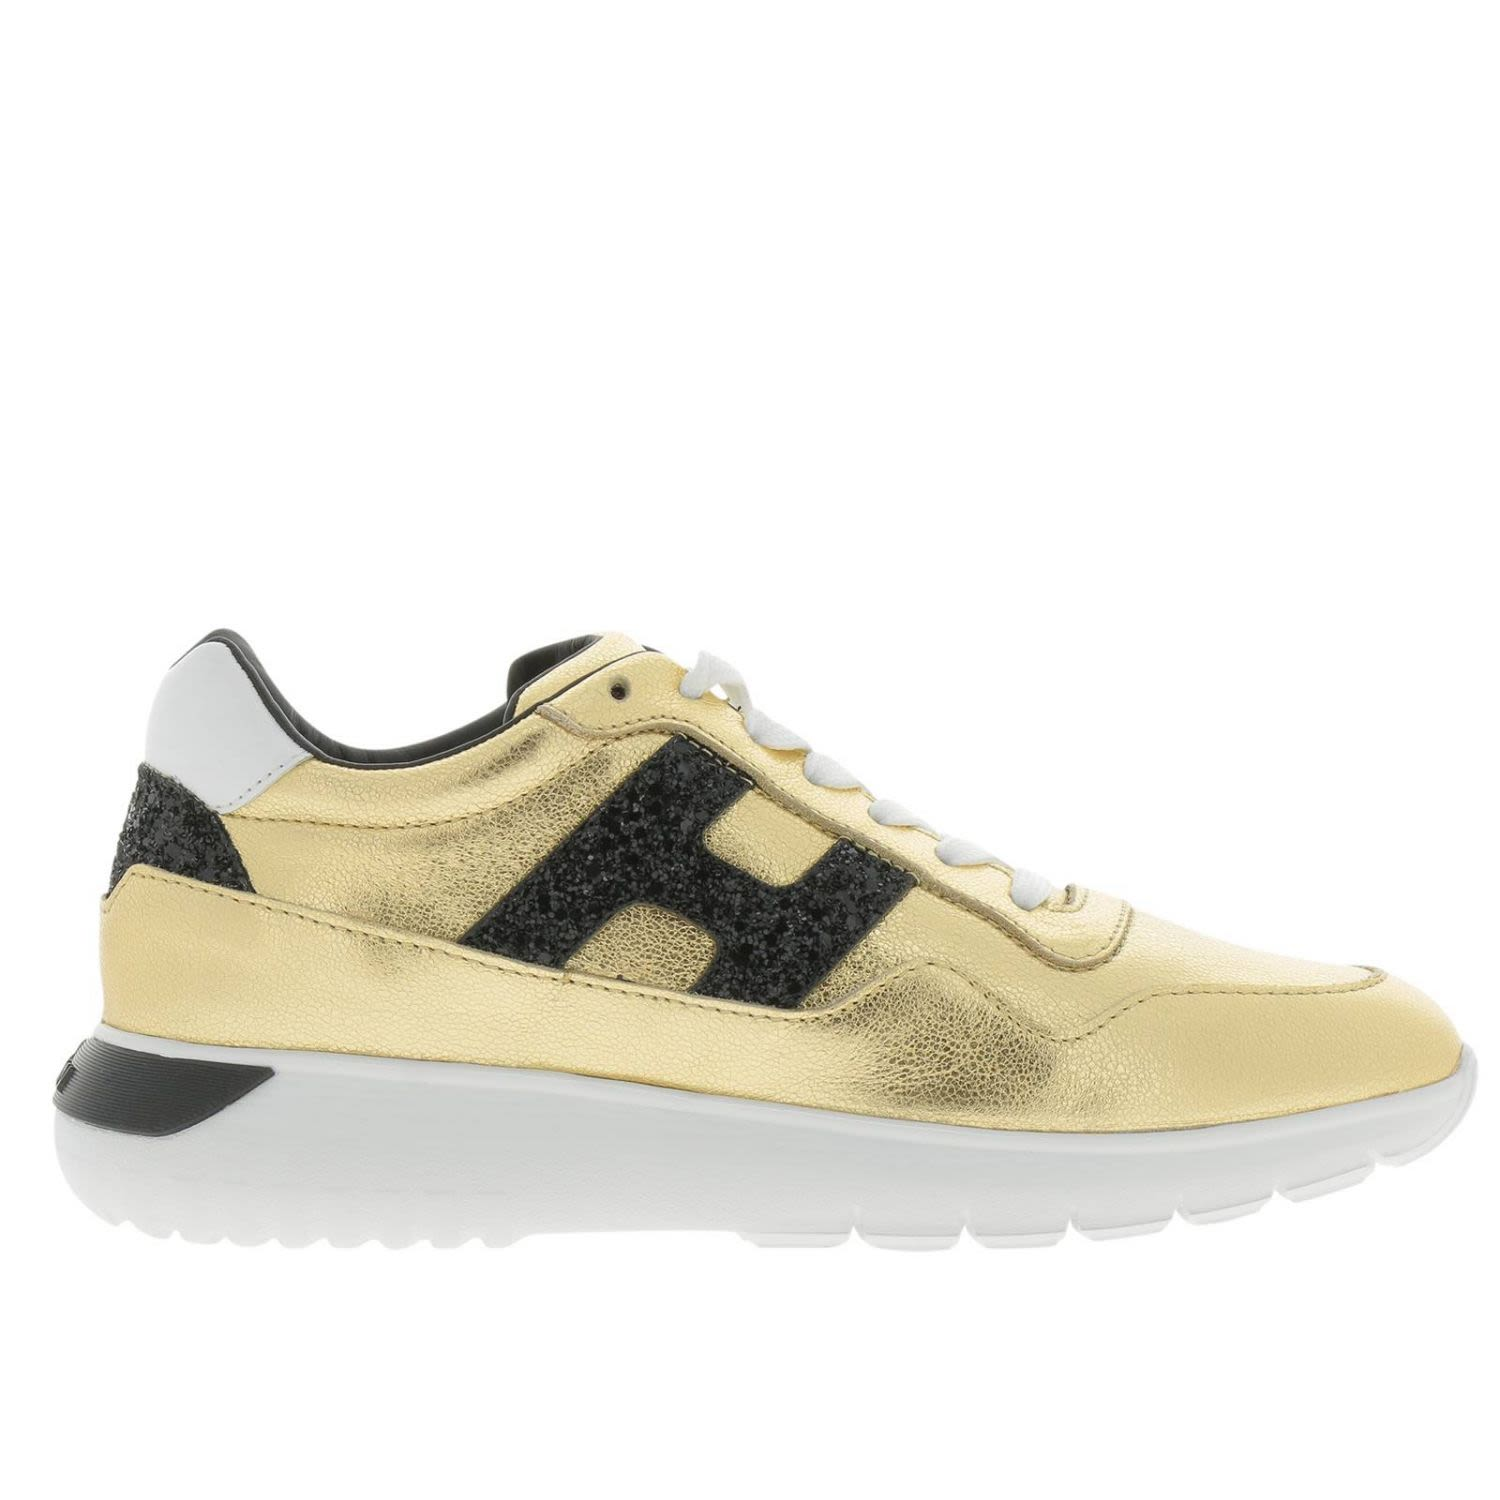 0d18ba74a9e italist | Best price in the market for Hogan Hogan Sneakers Shoes ...